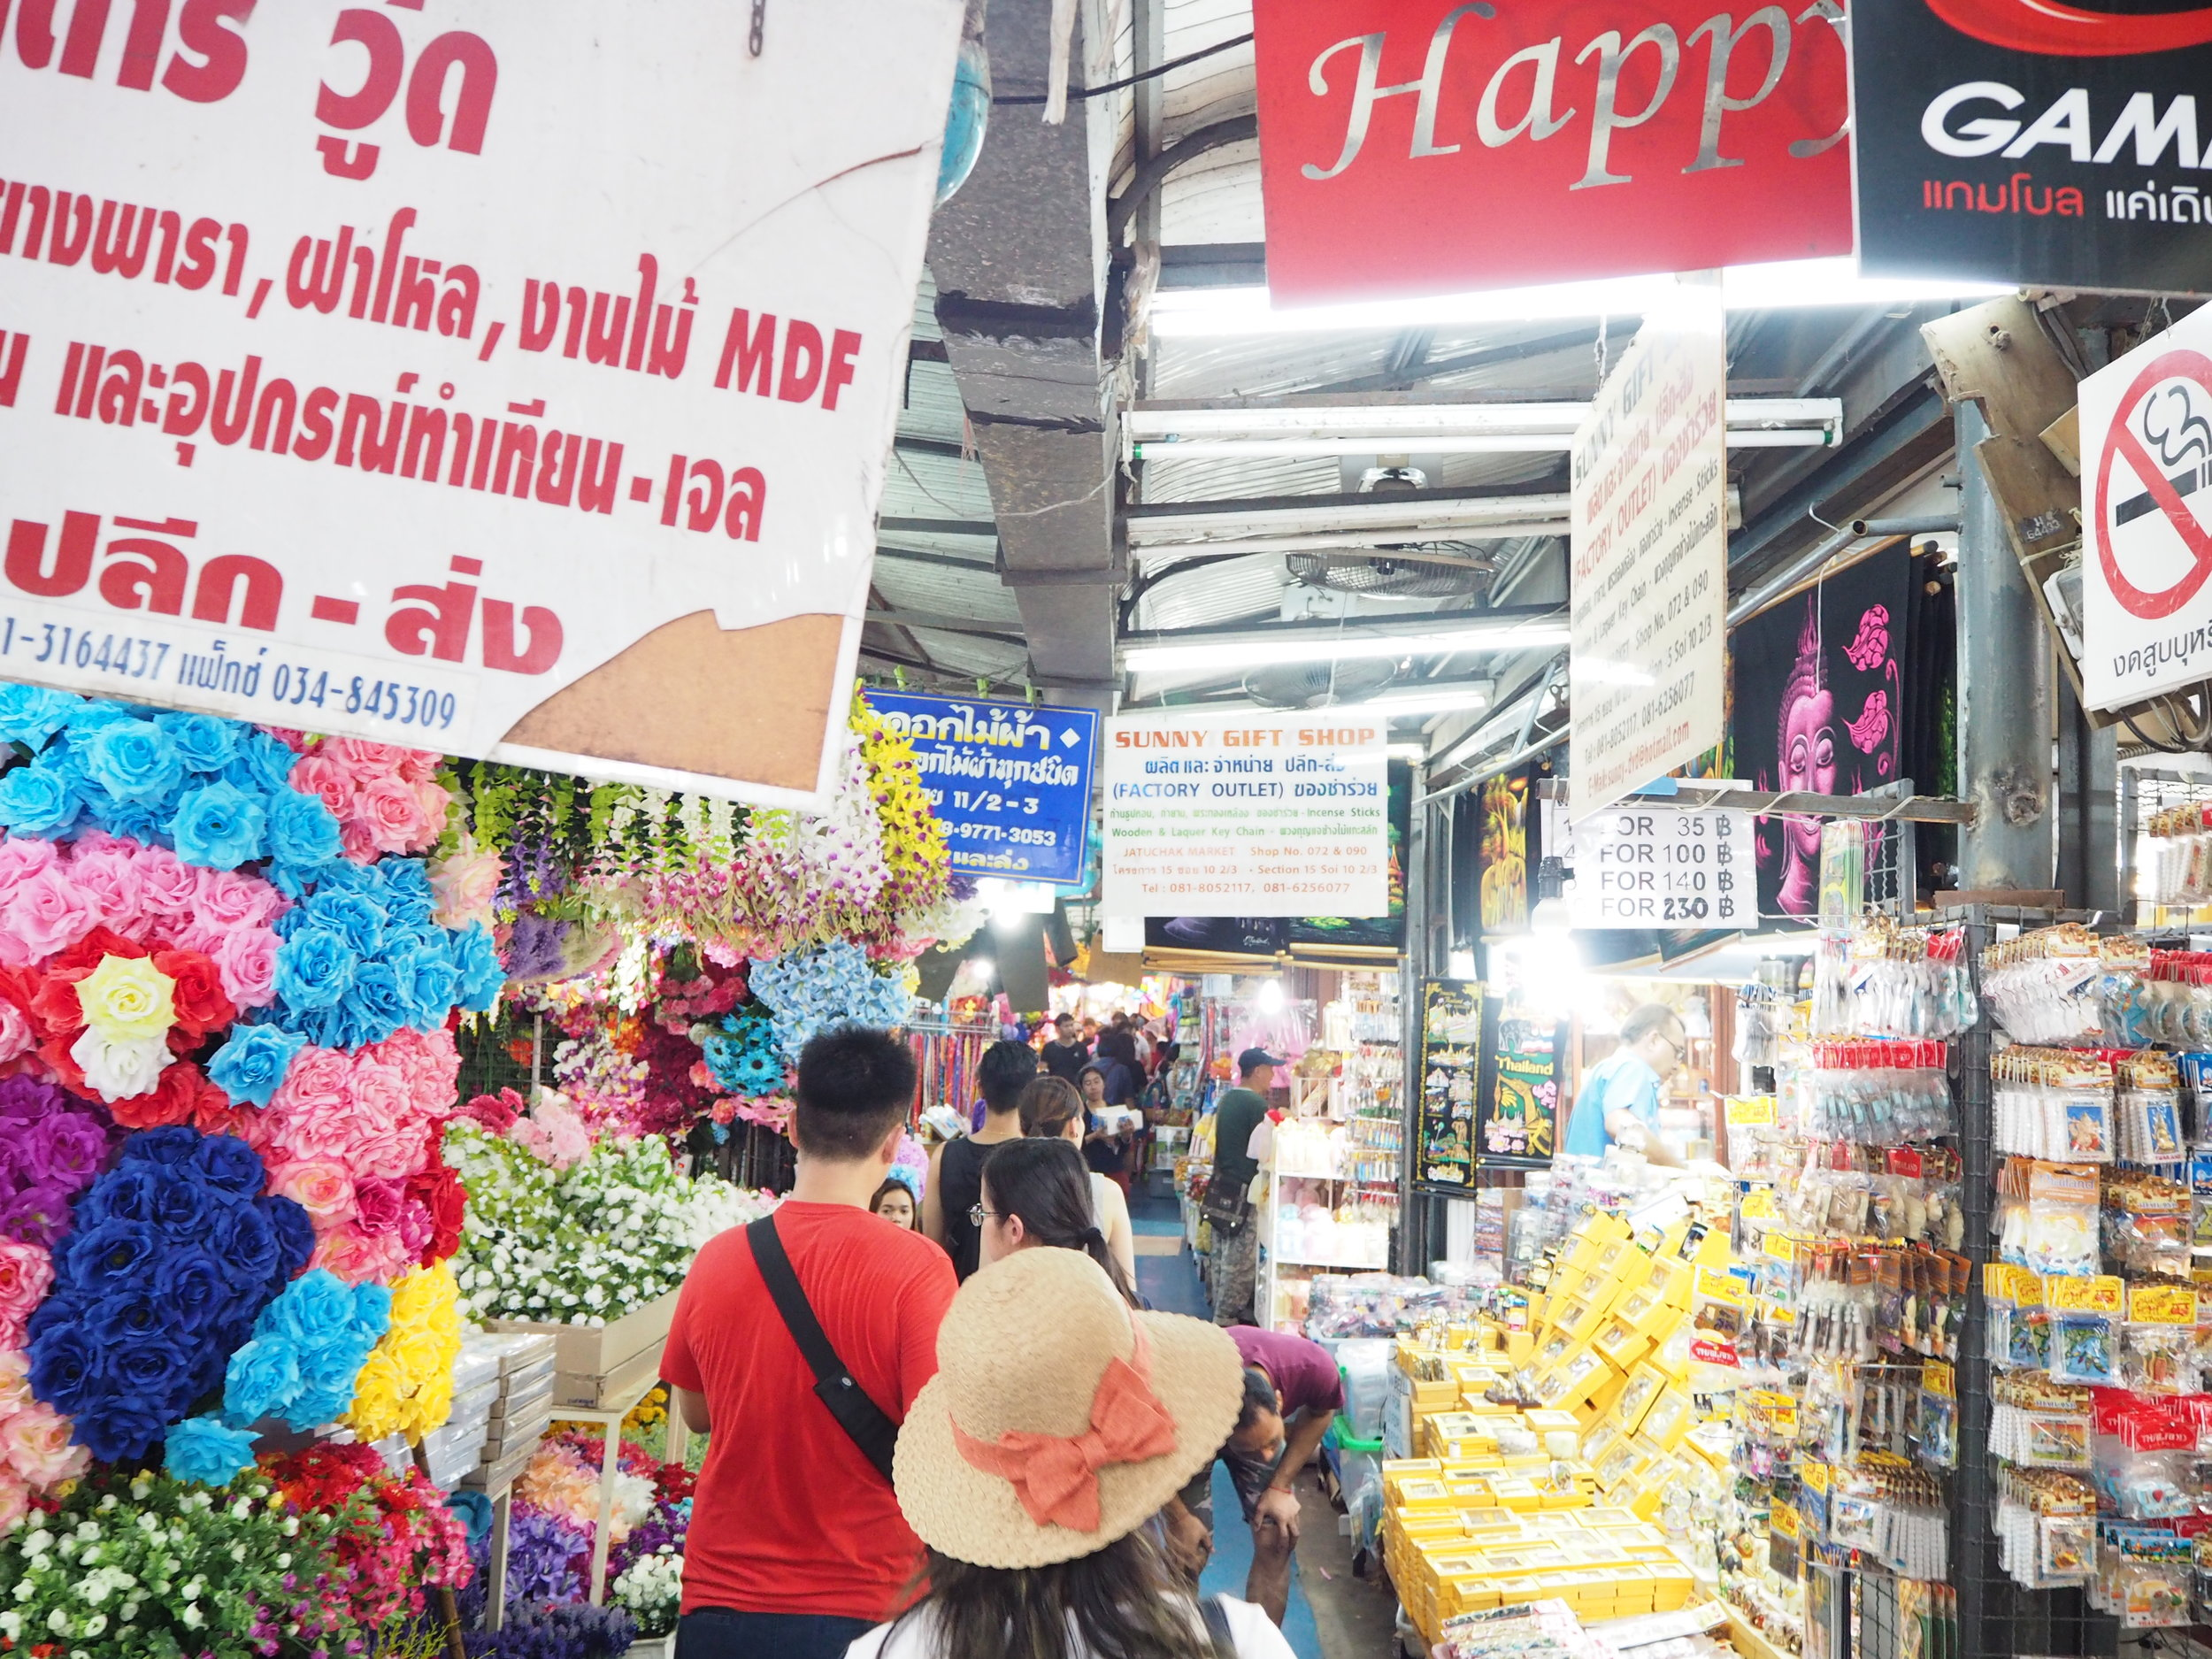 Navigating the famous Chatuchak market in Bangkok - this is the world's largest weekend market with over 15,000 stalls and receives 200,000 visitors each weekend!